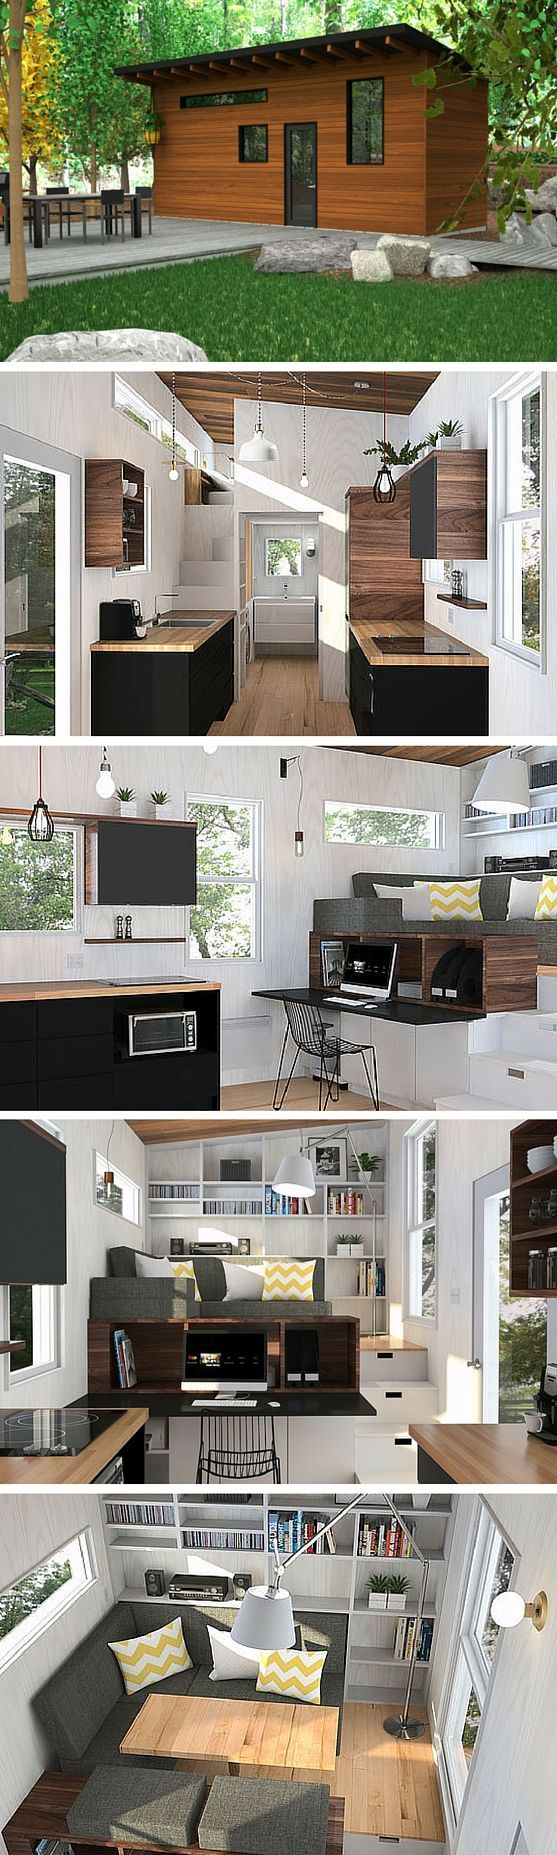 230 best TINY HOMES images on Pinterest | Laundry room storage ...